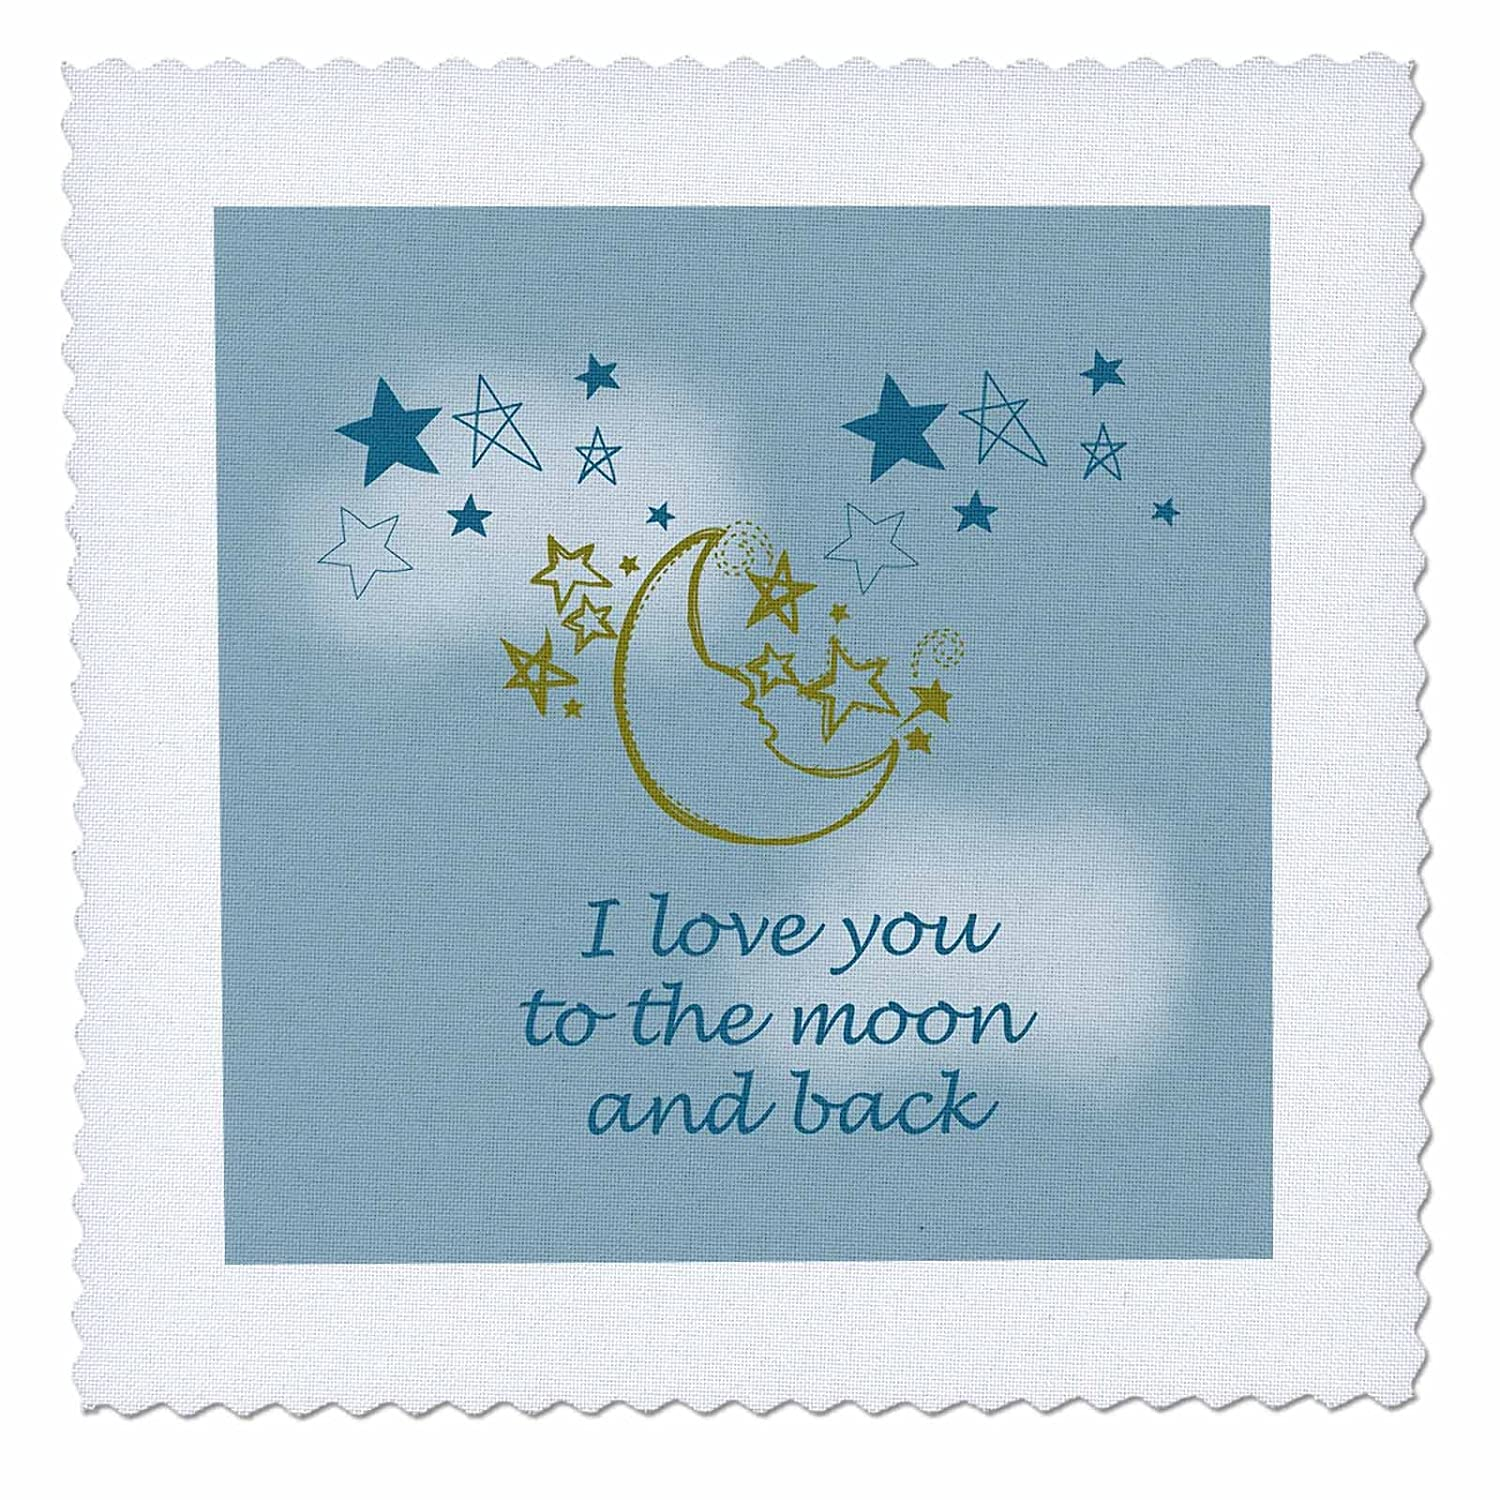 3dRose Love You to The Moon and Back-Quilt Square qs/_155825/_3 8 by 8-inch